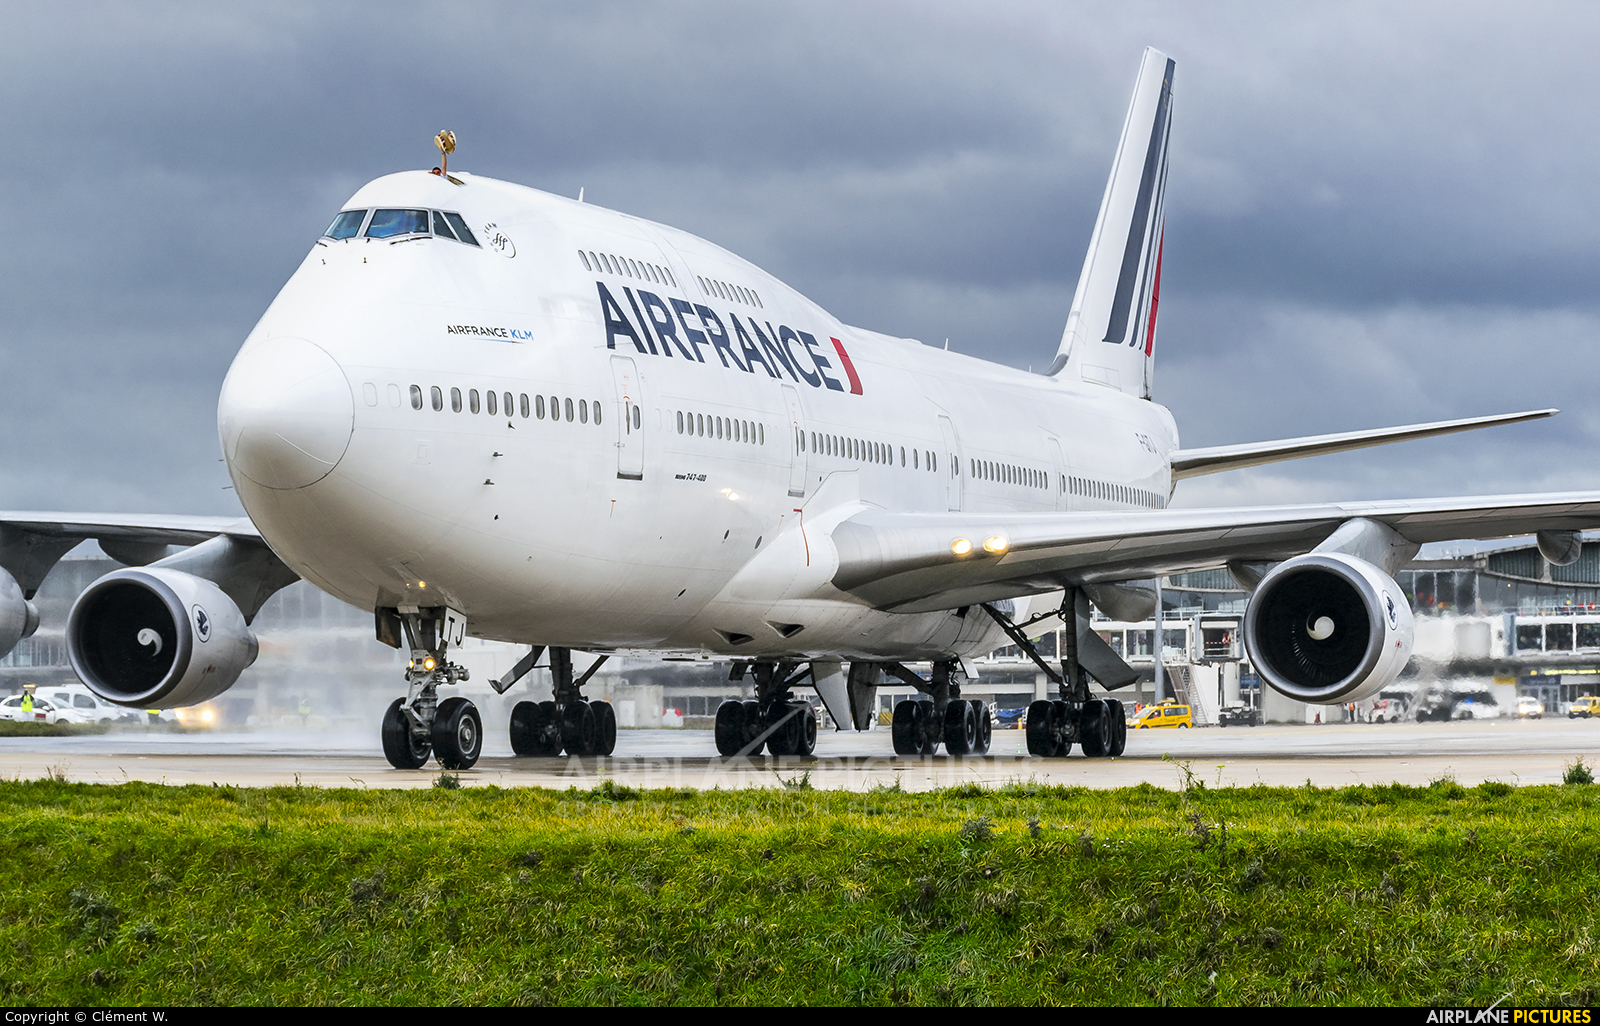 F gitj air france boeing 747 400 at paris charles de for Interieur 747 air france